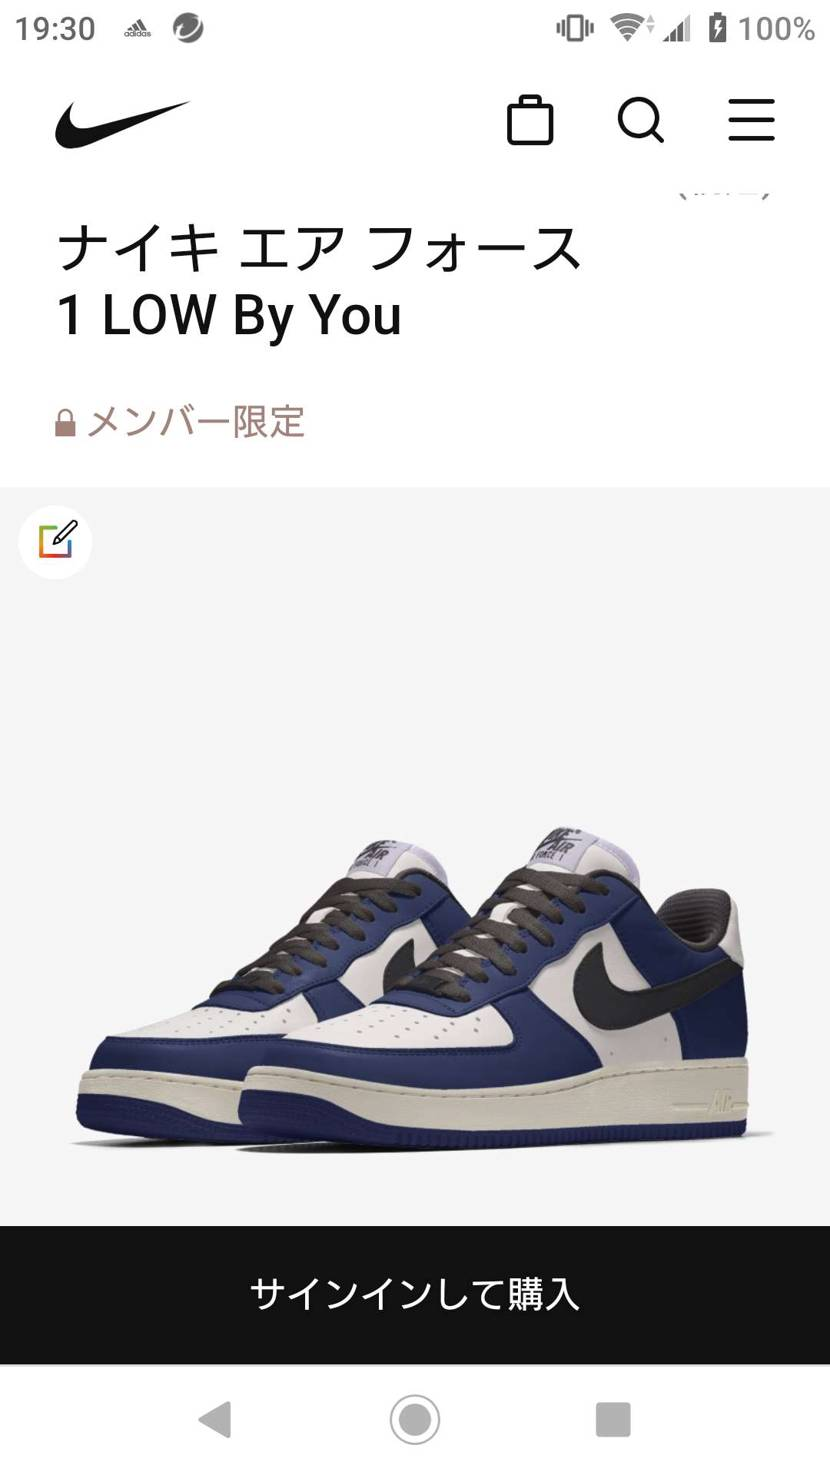 By You AF1Lowにてディープロイヤル風にして注文してみました😁 カラー